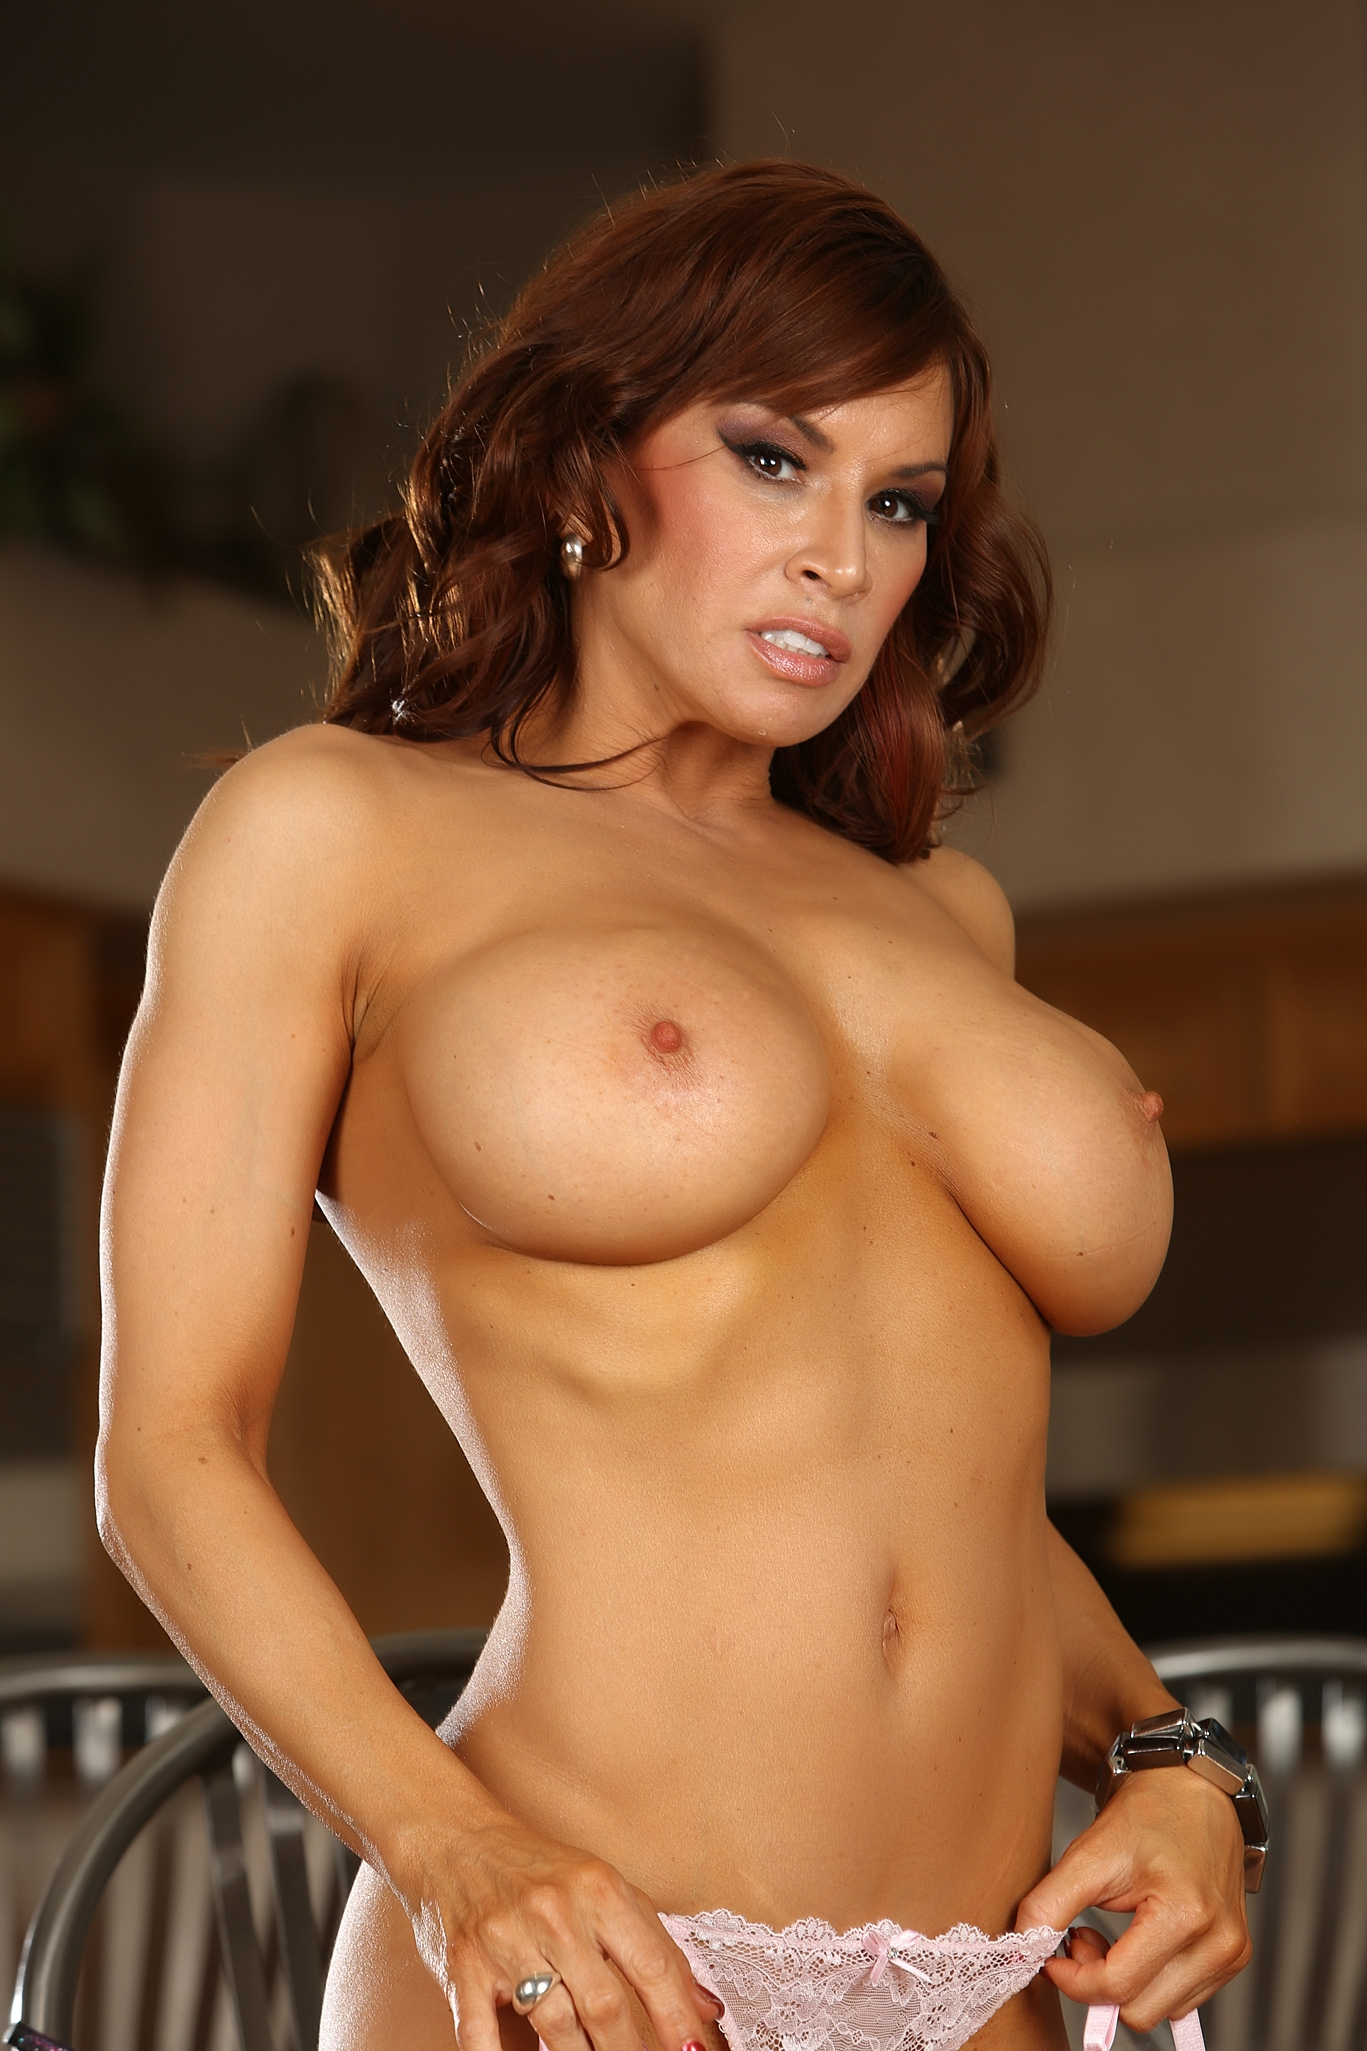 Devon Michaels Photo Set 5 AI - Aziani :: Aziani.com your ...